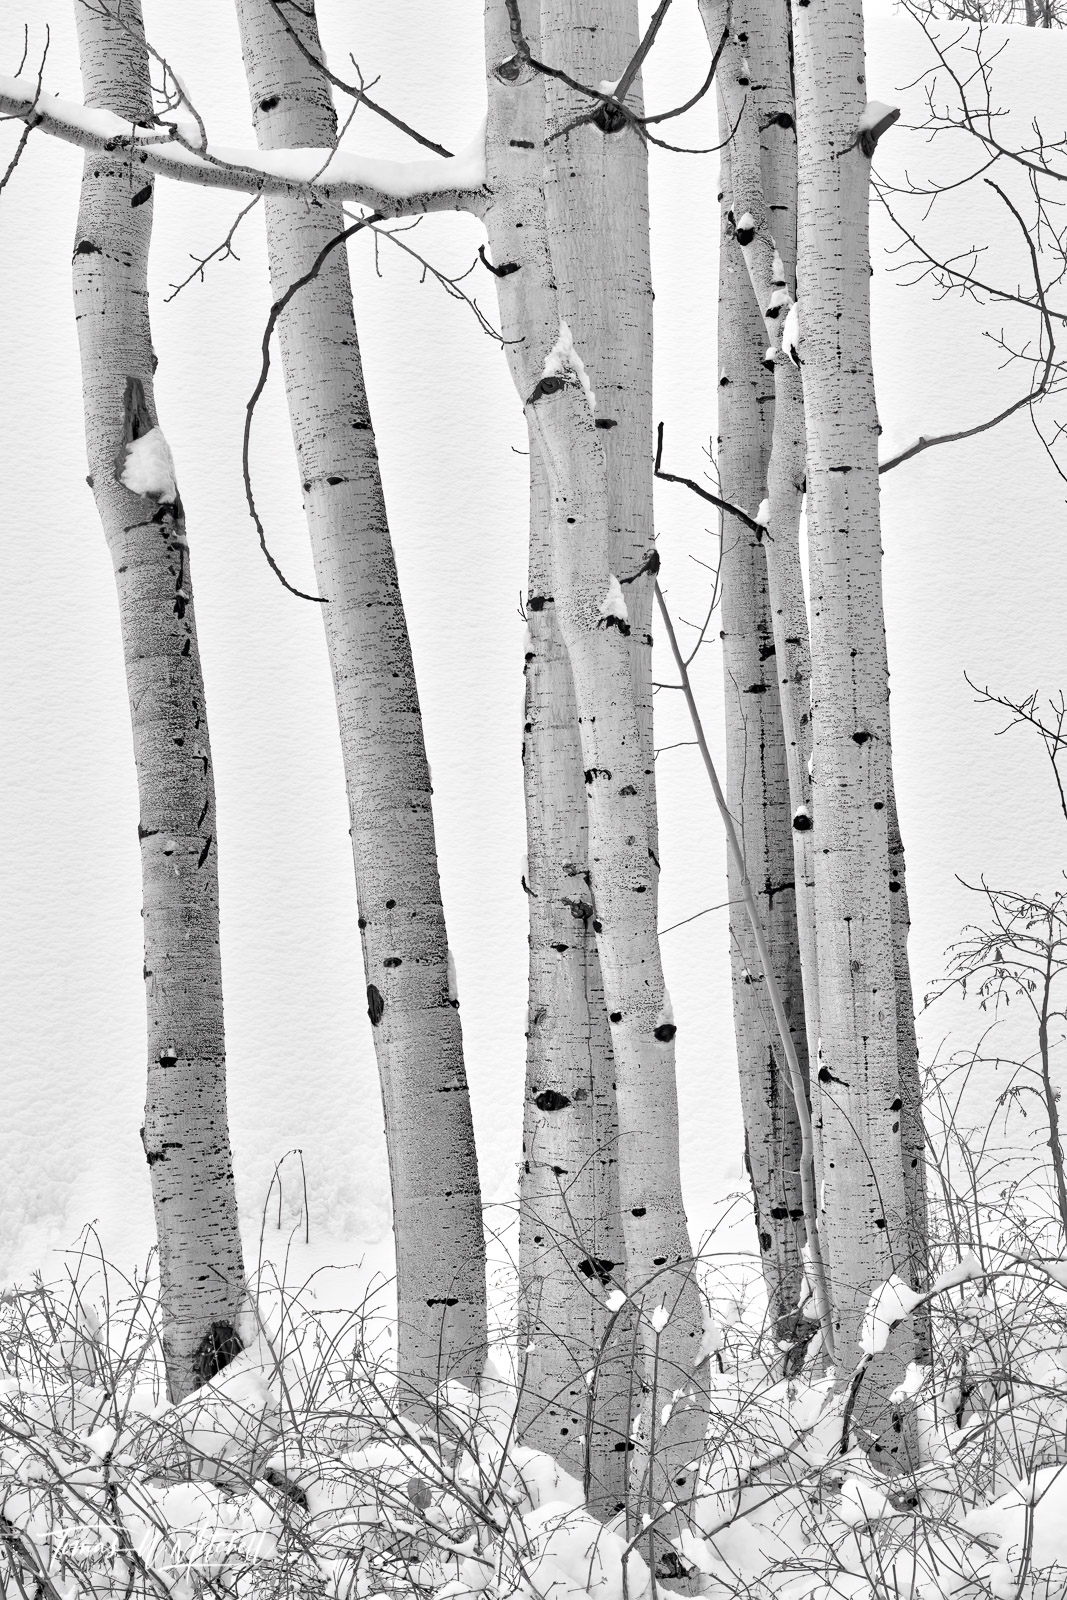 UINTA-WASATCH-CACHE NATIONAL FOREST, UTAH, limited edition, fine art, prints, snow, winter, aspen trees, photograph, abstract, black and white, photo